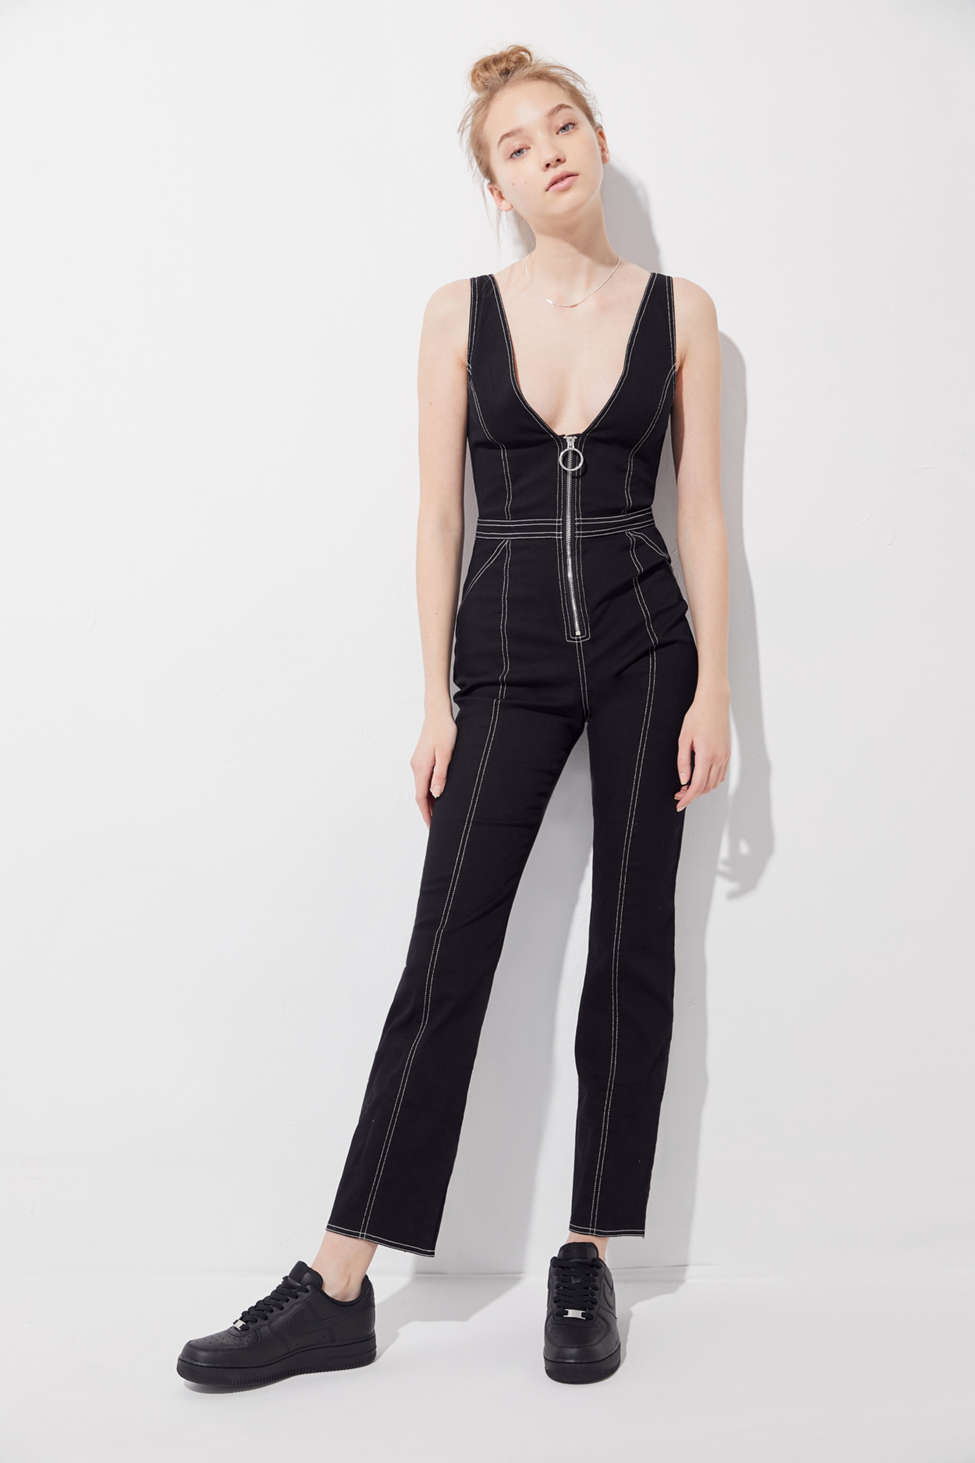 Tiger Mist Ava Contrast Stitch Kick Flare Jumpsuit Urban Outfitters